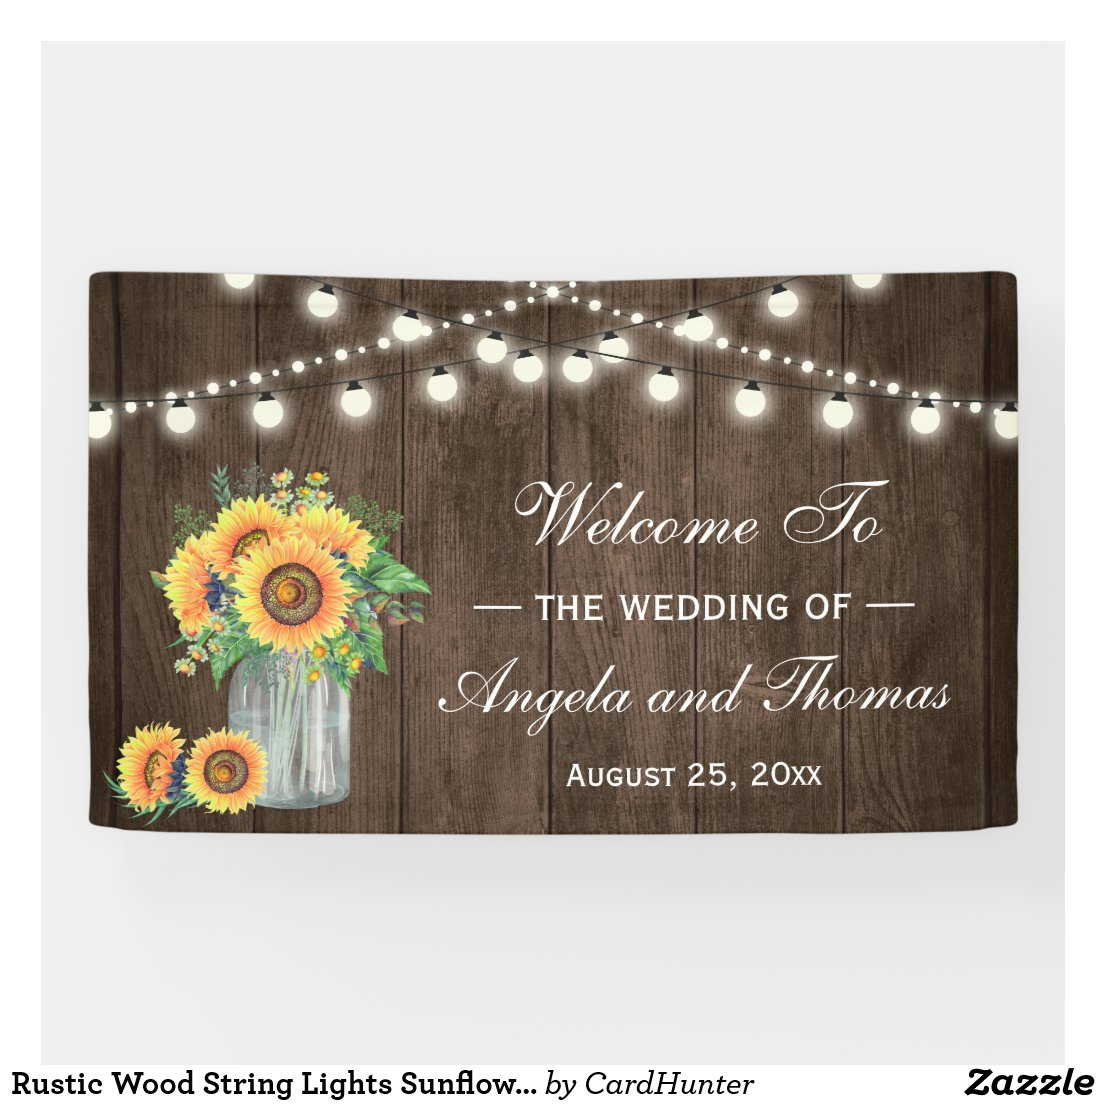 Rustic Wood String Lights Sunflowers Wedding Party